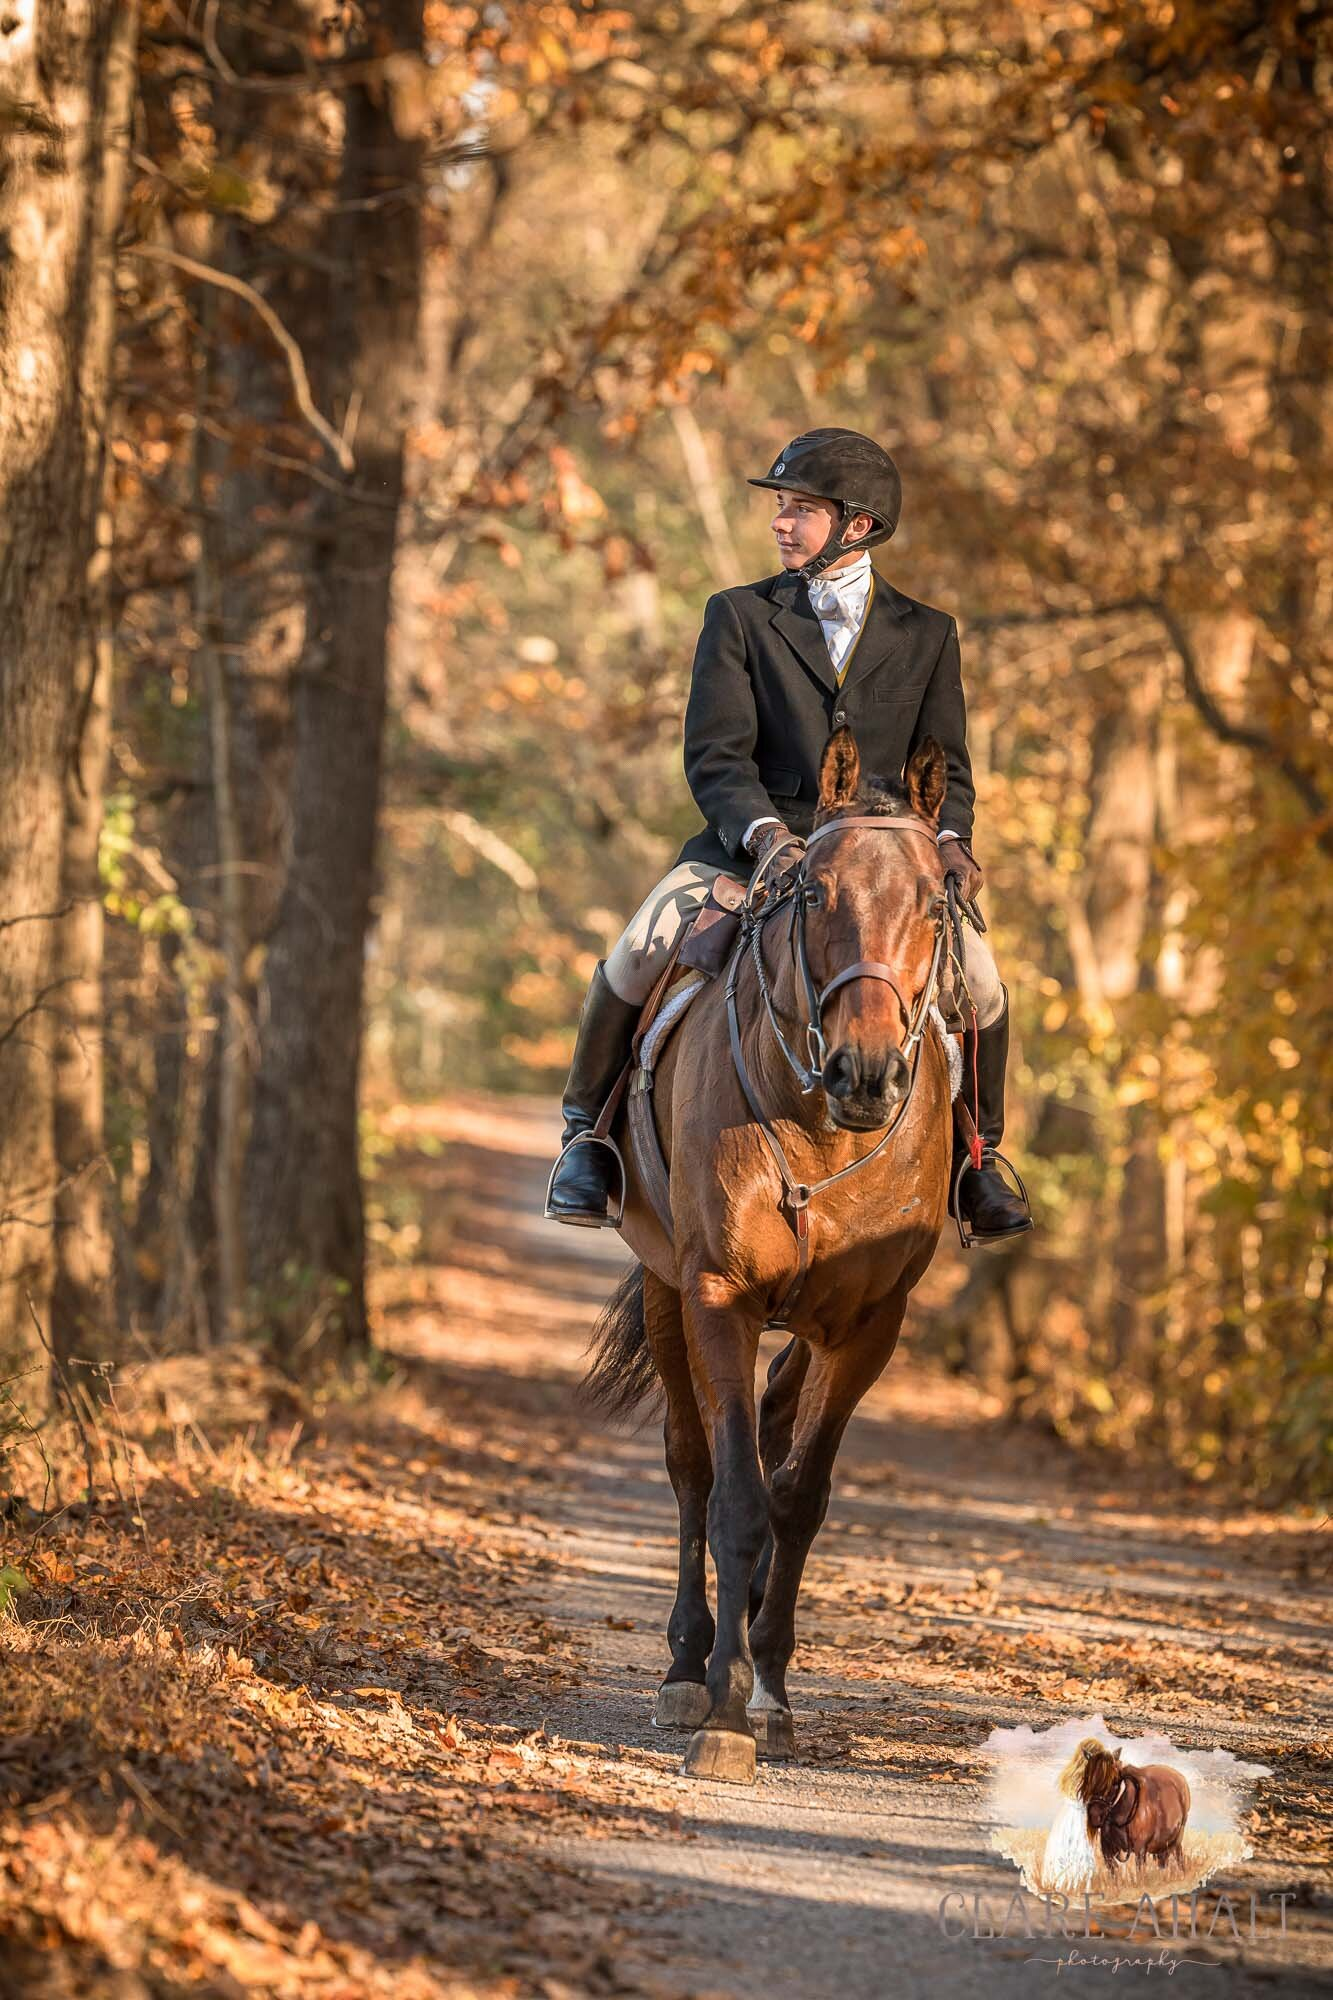 equine_photographer_potomac_md_equine_photographer_middleburg_VA_equine_portraiture_loudon_county_VA-1275.jpg